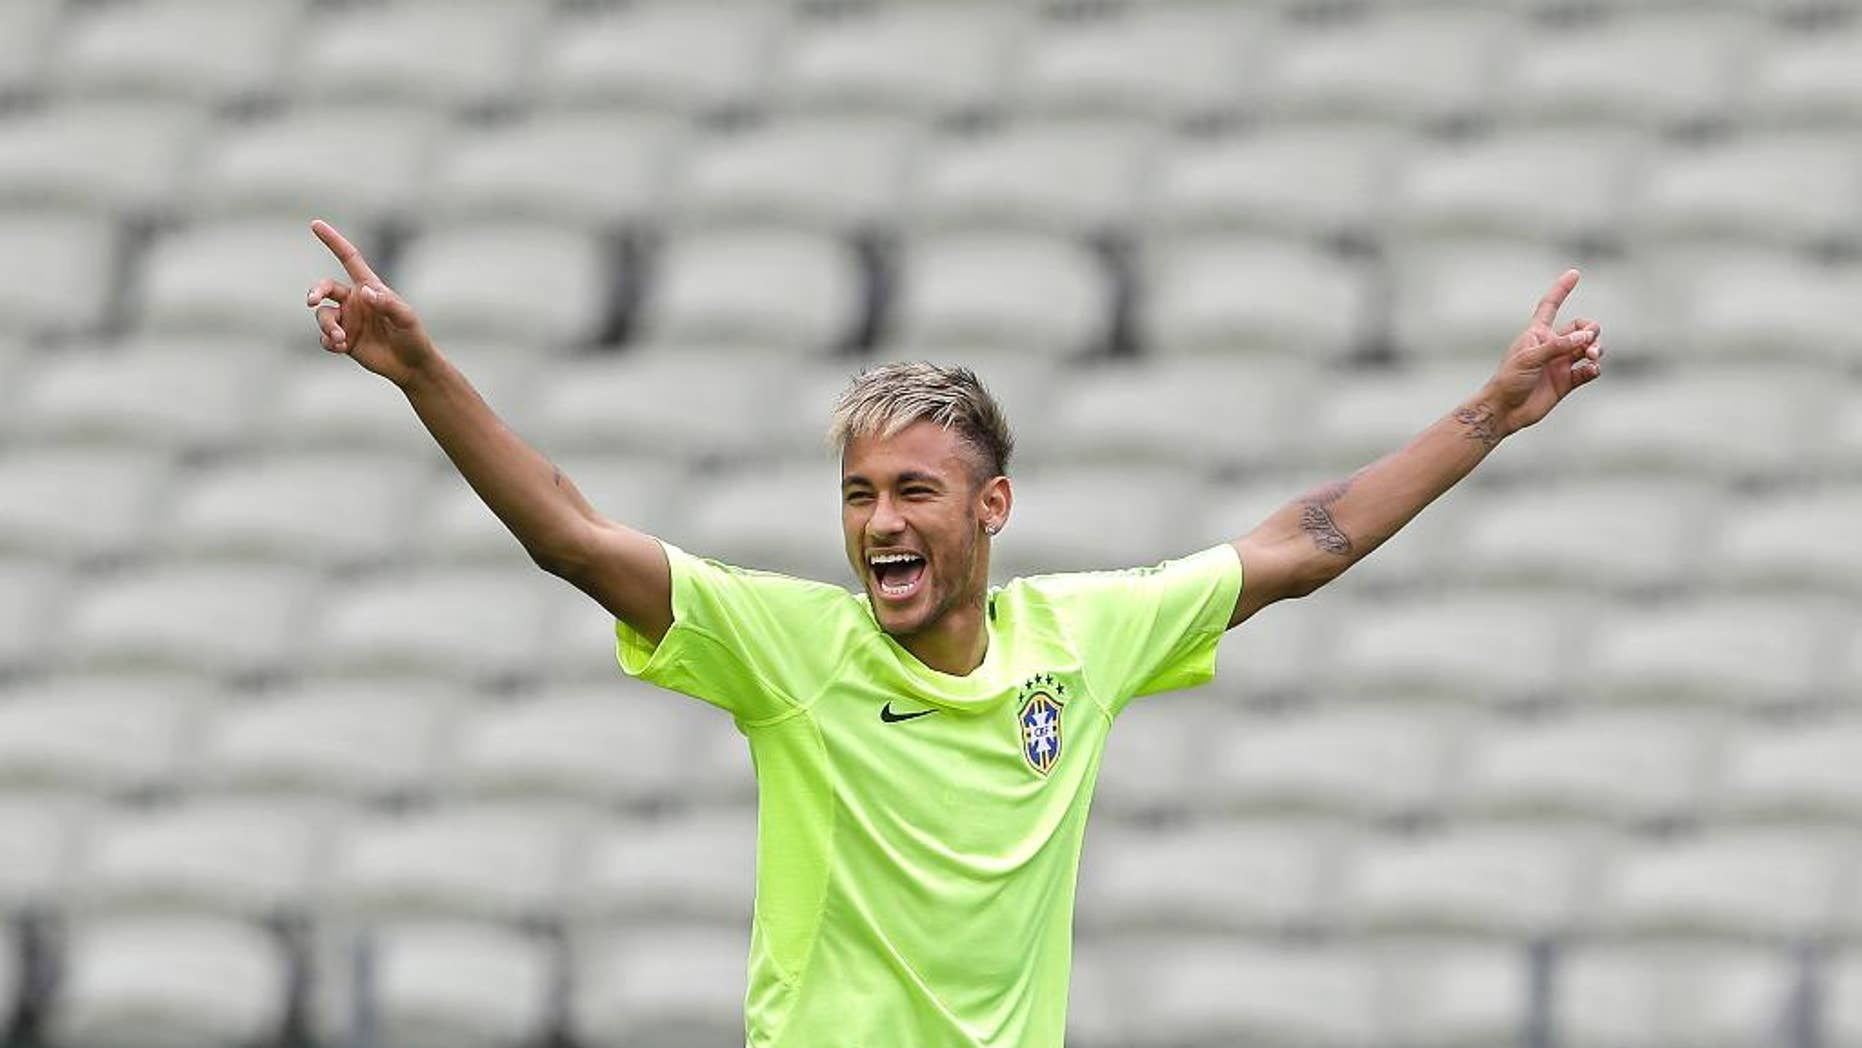 FILE - This June 16, 2014 file photo shows Brazil's Neymar smiling as he holds out his arms during a training session at the Arena Castelao in Fortaleza, Brazil. Through one week of the World Cup, Facebook has already seen more people having more interactions about the tournament on the social media site than it had for the Sochi Olympics, Super Bowl and Academy Awards combined. A photo posted by Pitbull, who performed at the opening ceremonies, has received more than 1.2 million interactions, as has a photo posted by Brazilian soccer star Neymar, Facebook said. (AP Photo/Andre Penner)